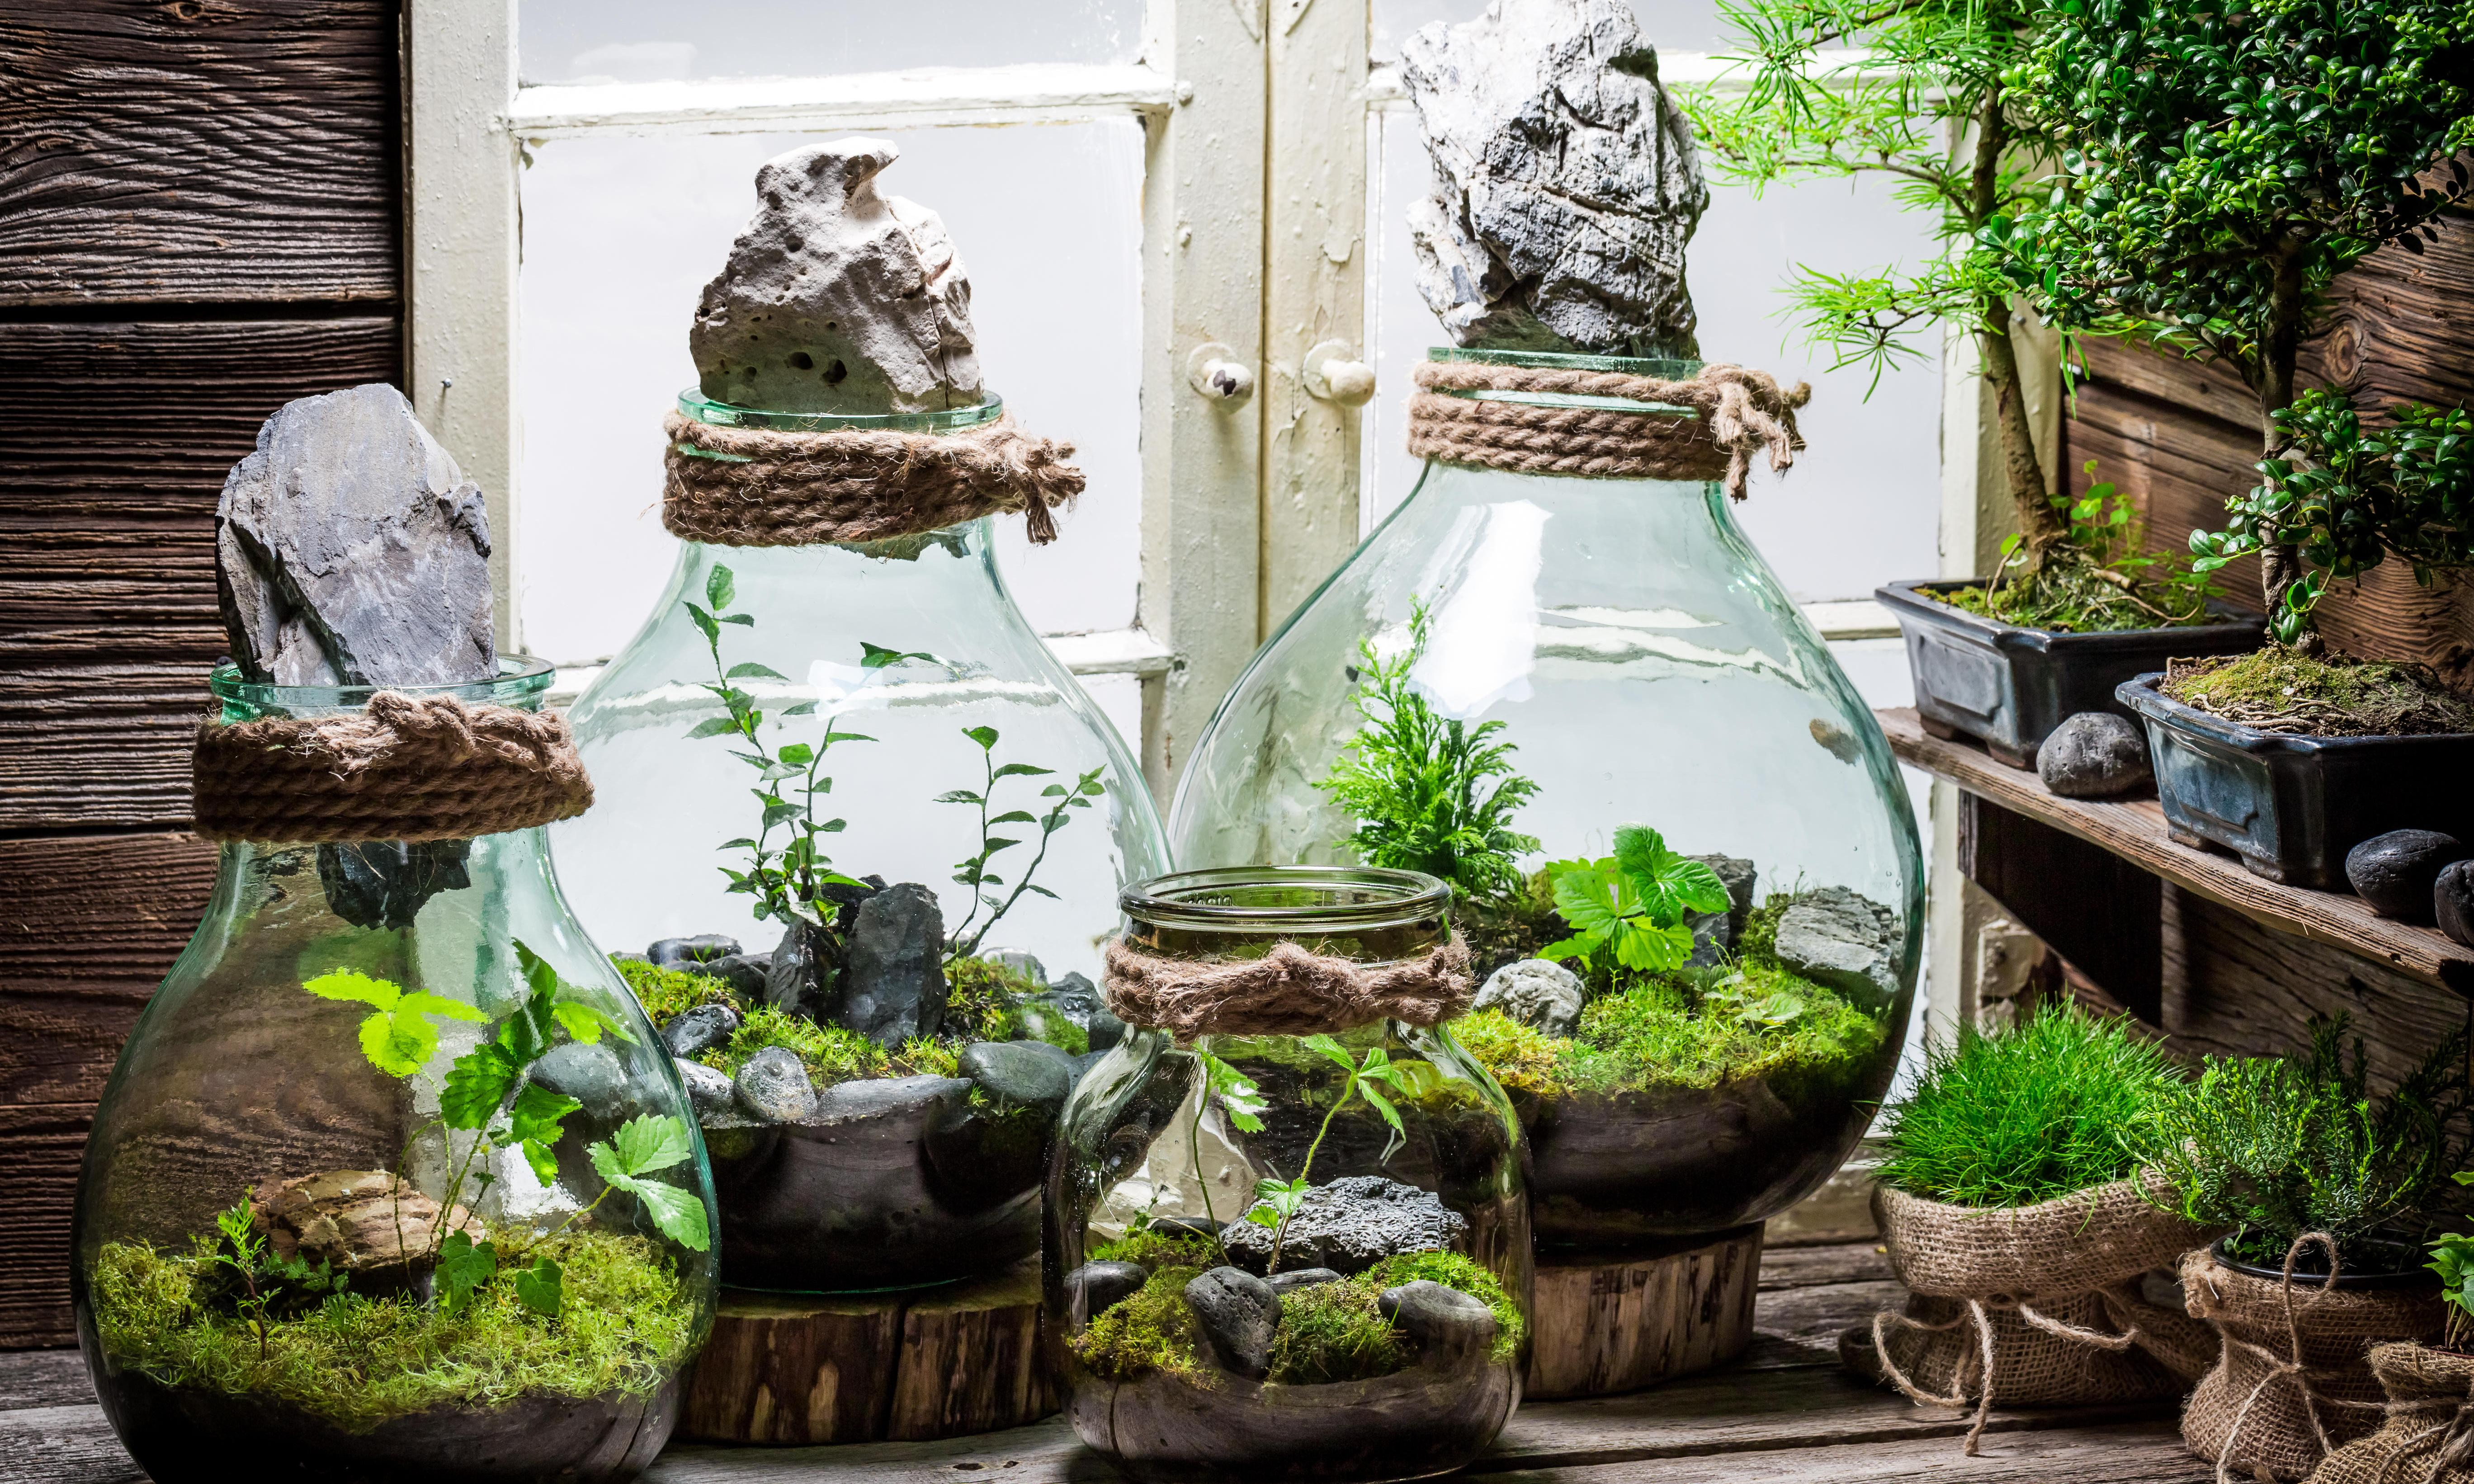 House plants: make your own miniature mossy world